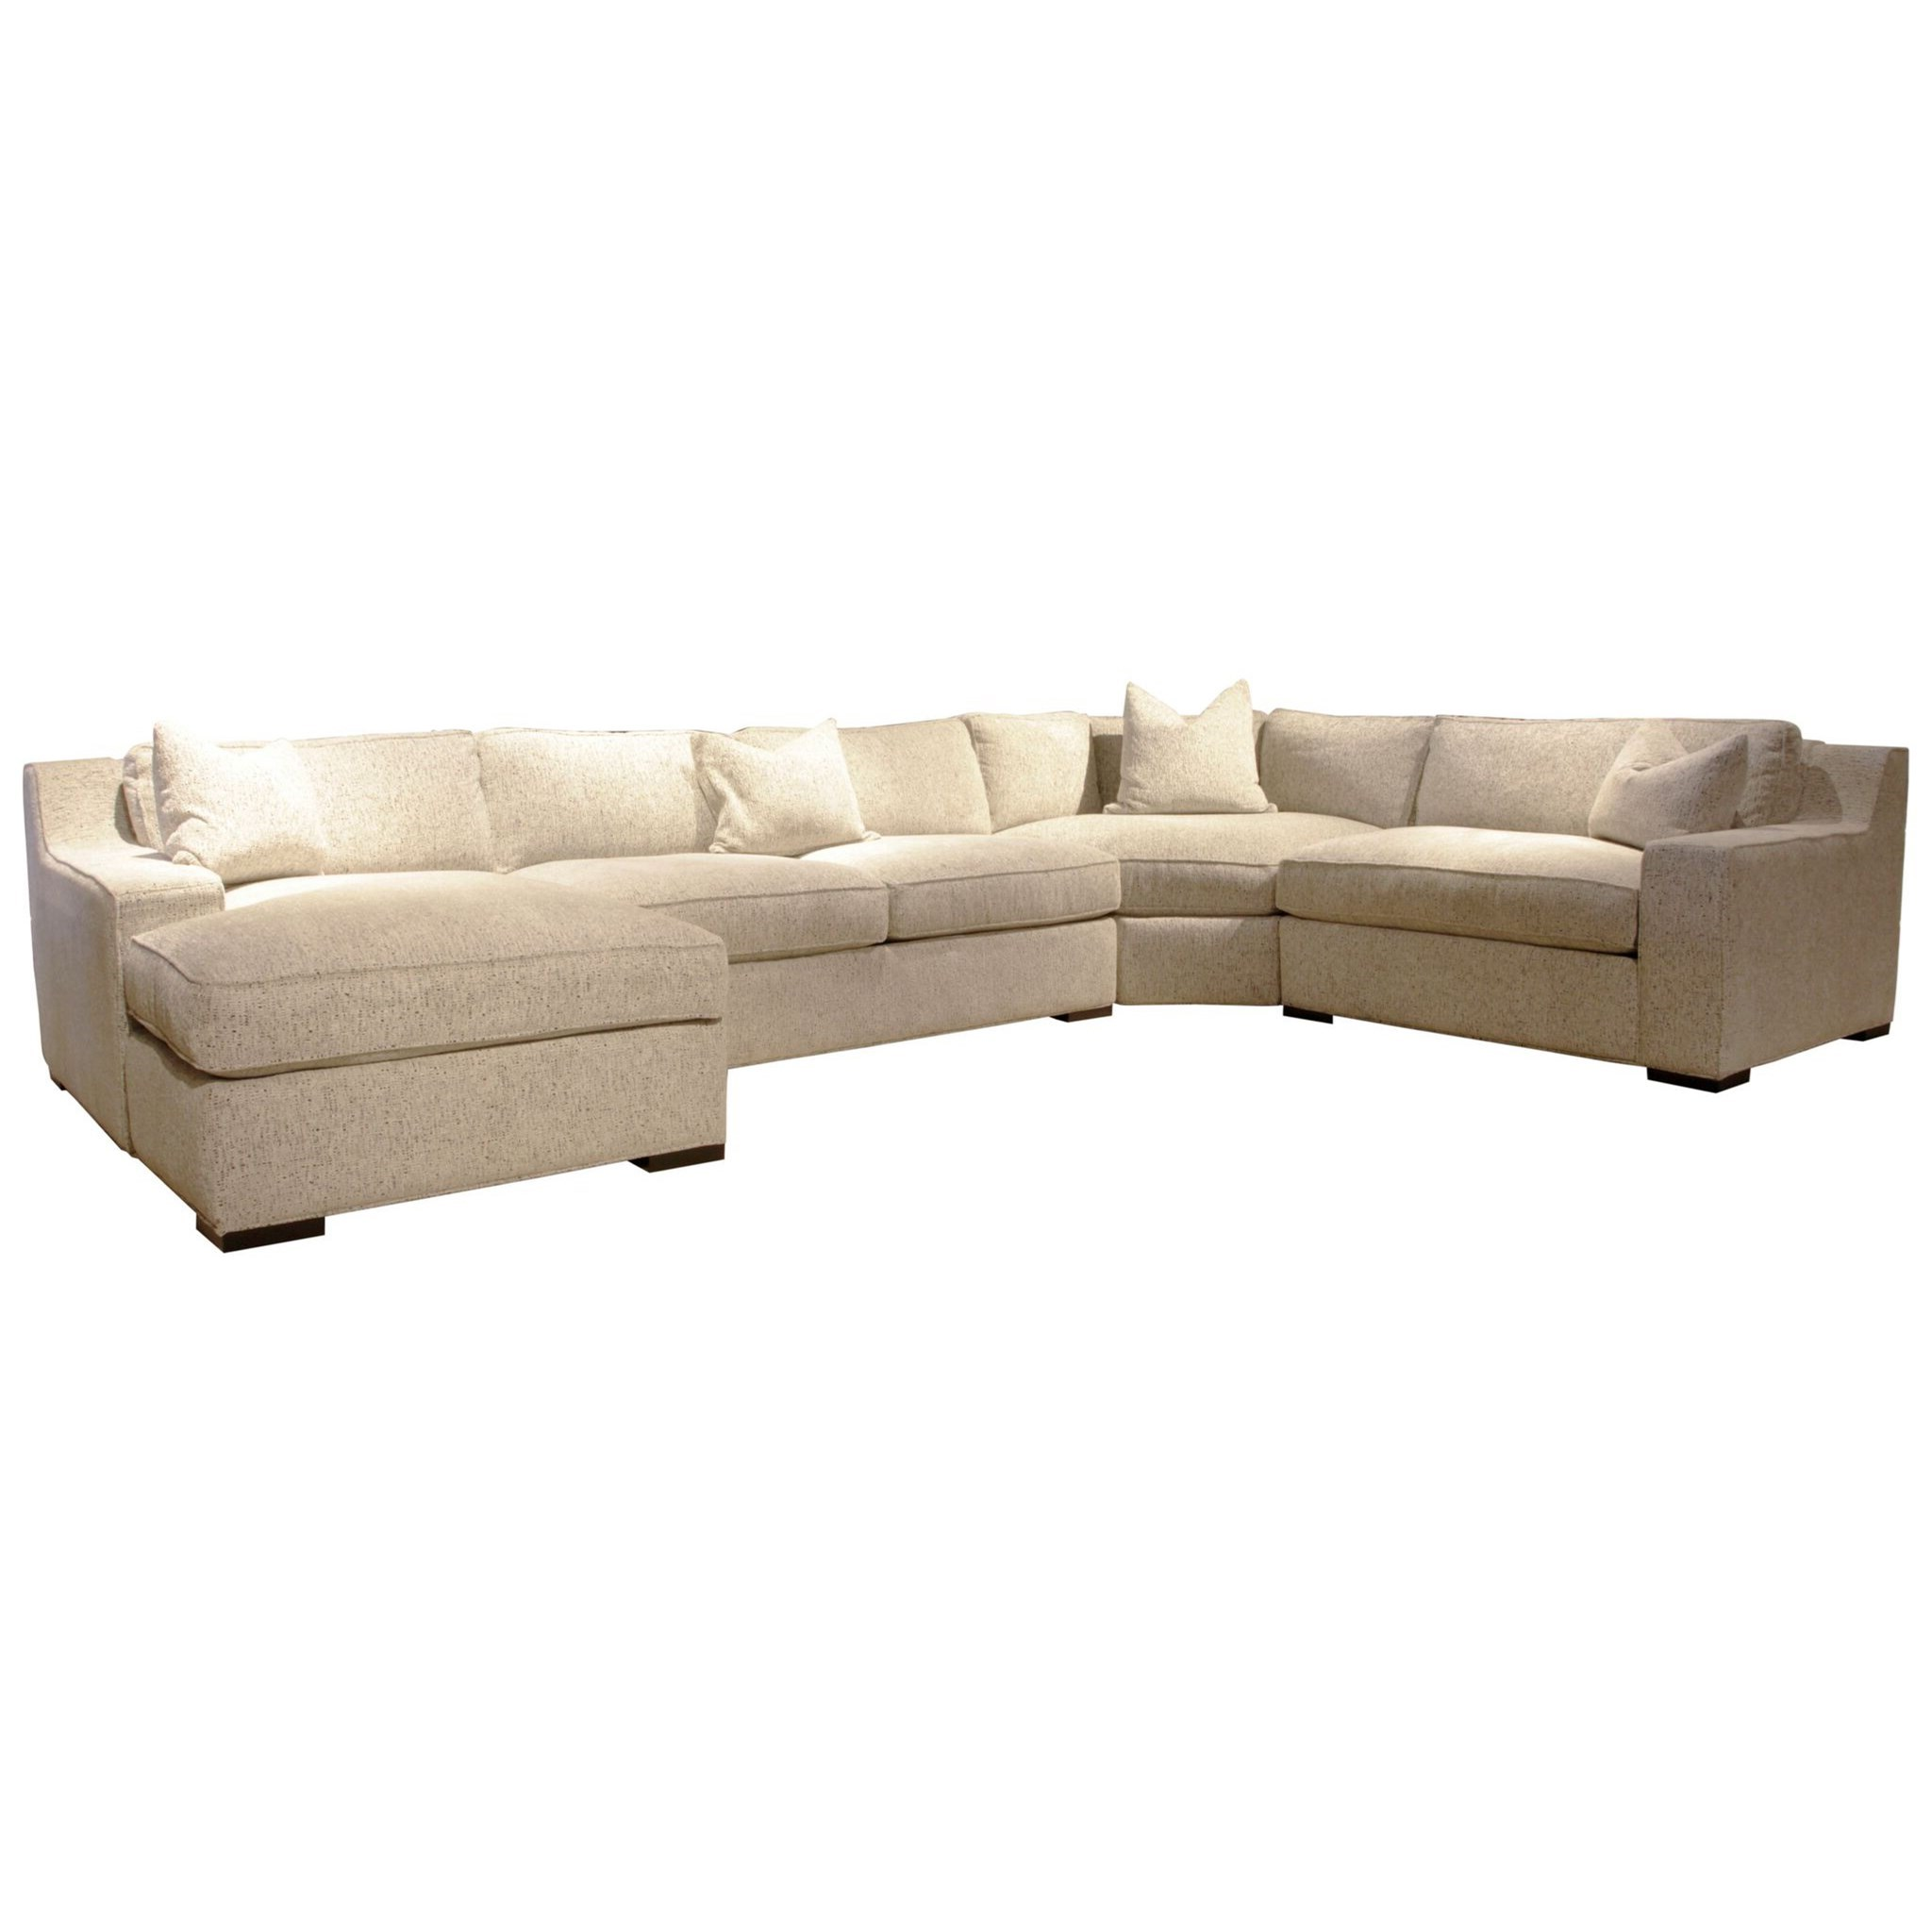 Morello Sectional Sofa by Jonathan Louis at Michael Alan Furniture & Design